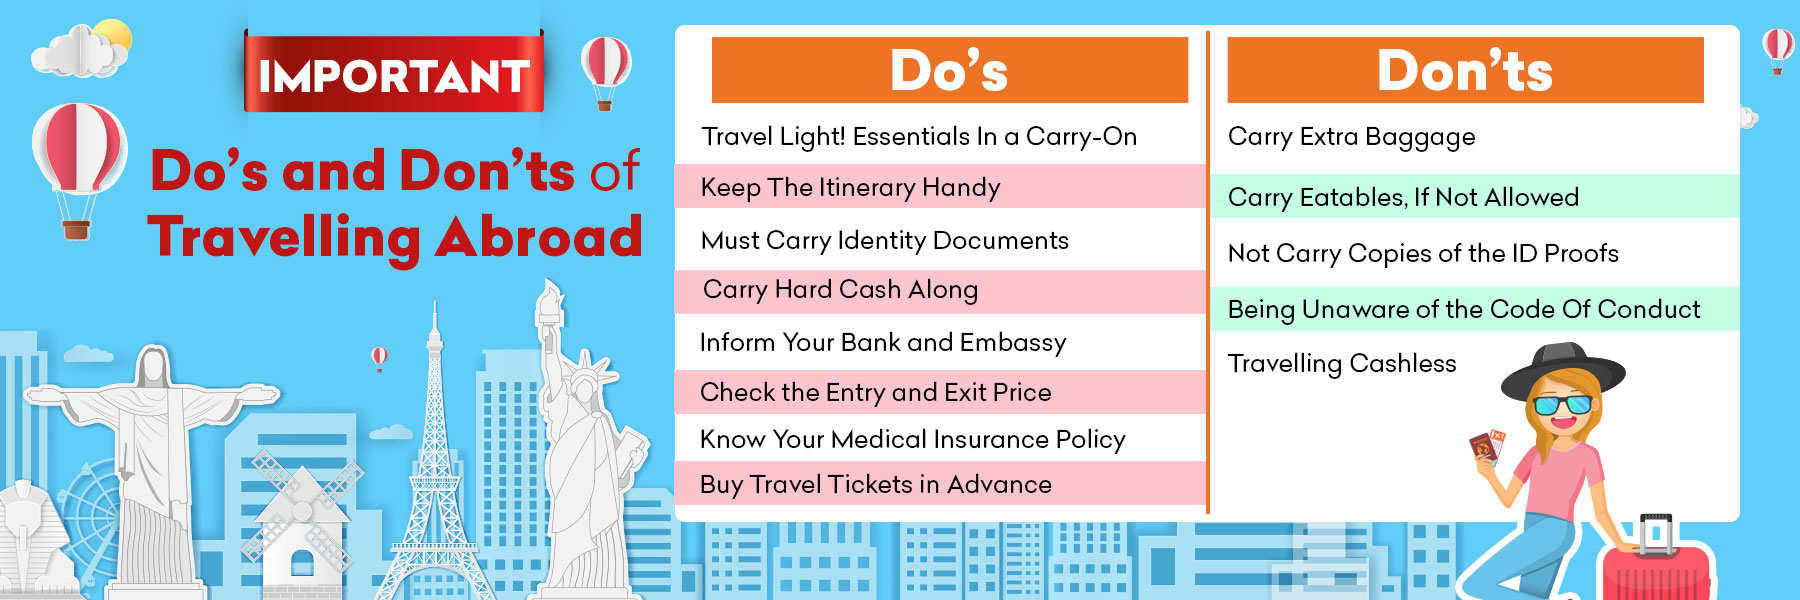 Important Do's and Don'ts of Travelling Abroad